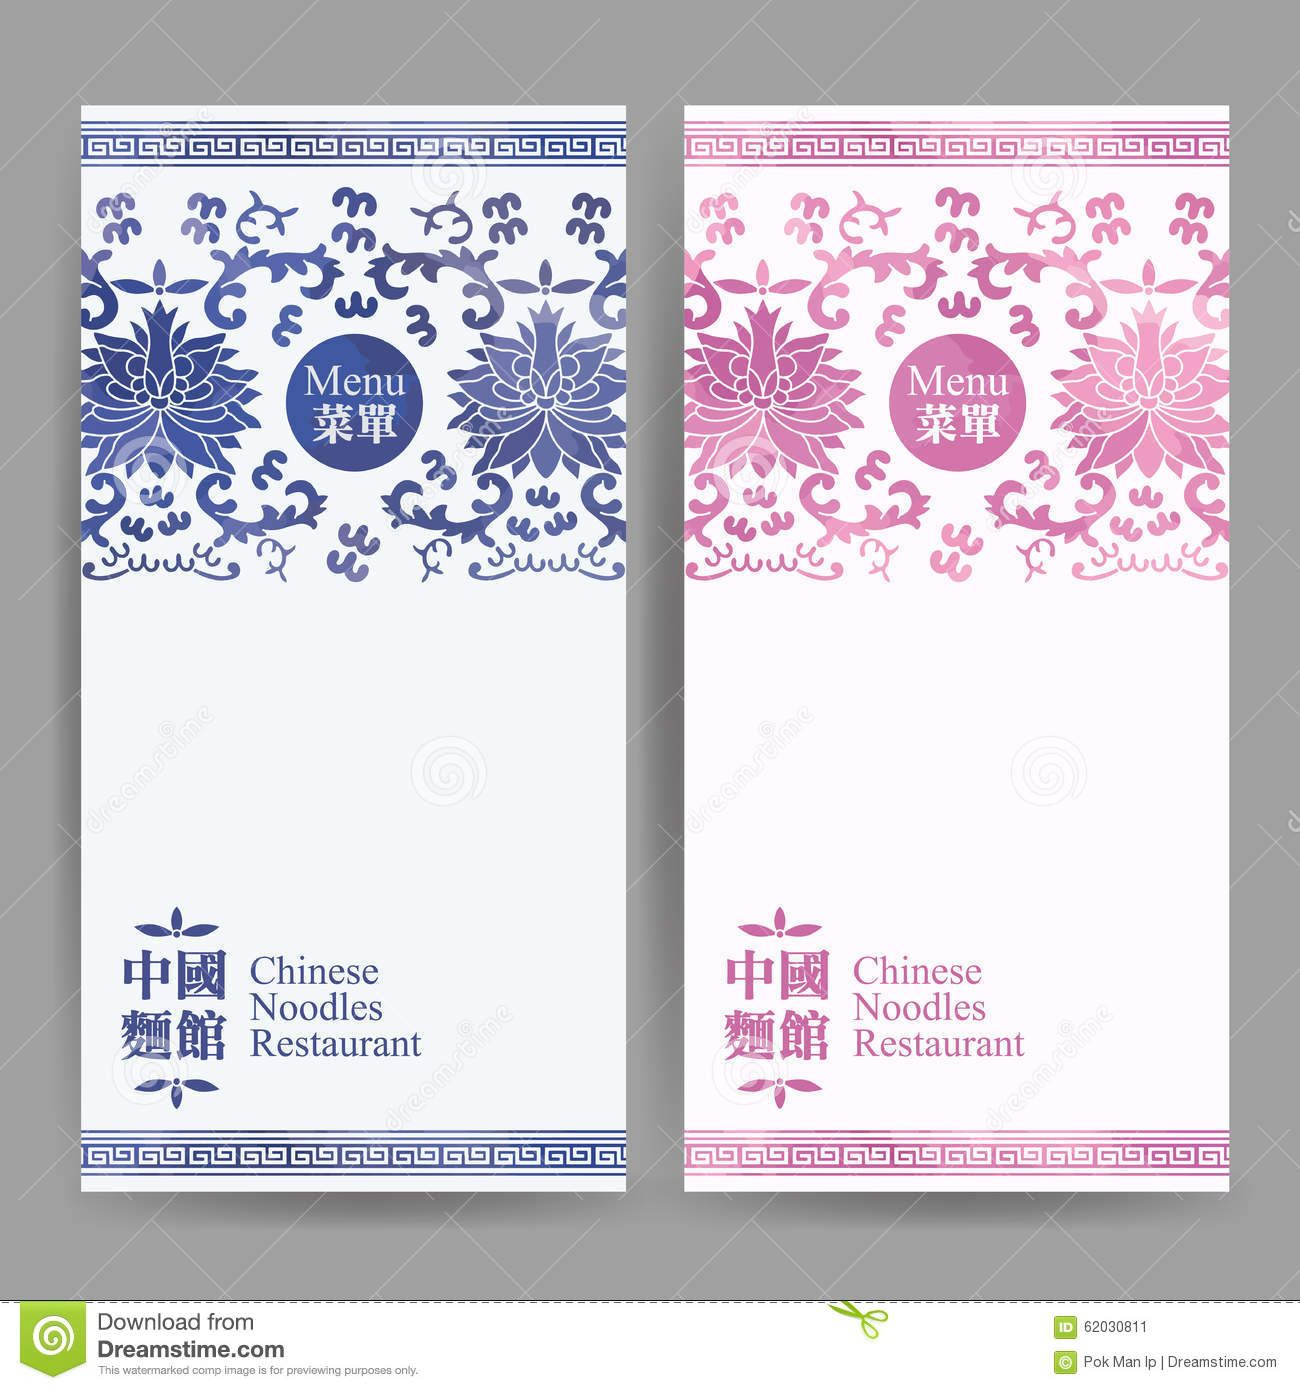 Vector Chinese Restaurant Menu Design With Porcelain